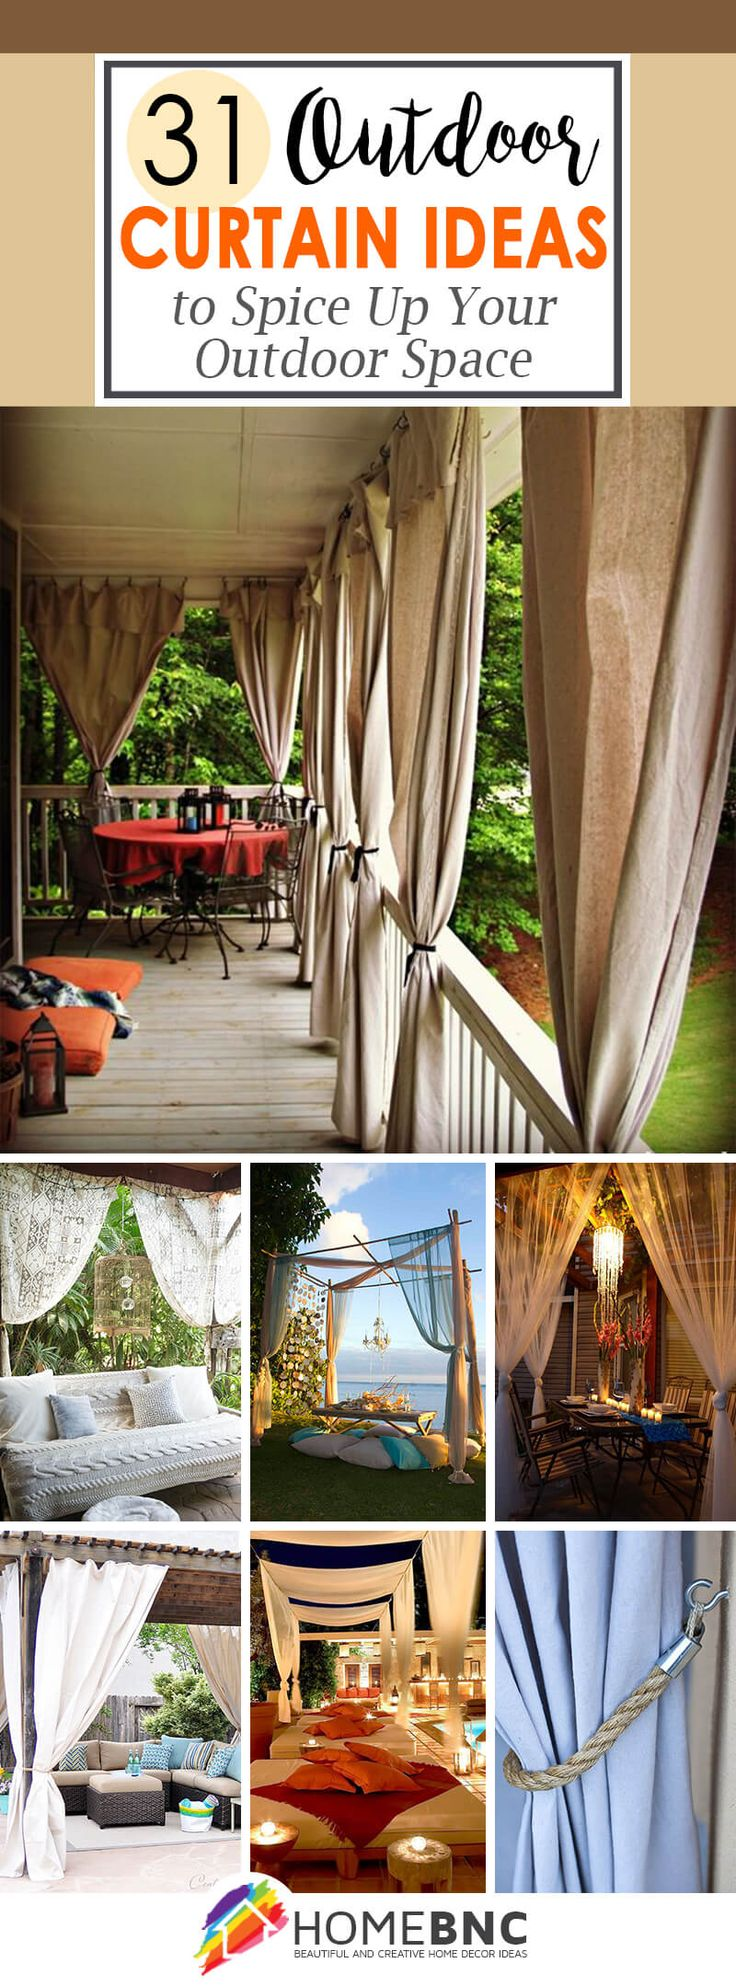 Best 25+ Outdoor curtains ideas on Pinterest | Patio curtains ...